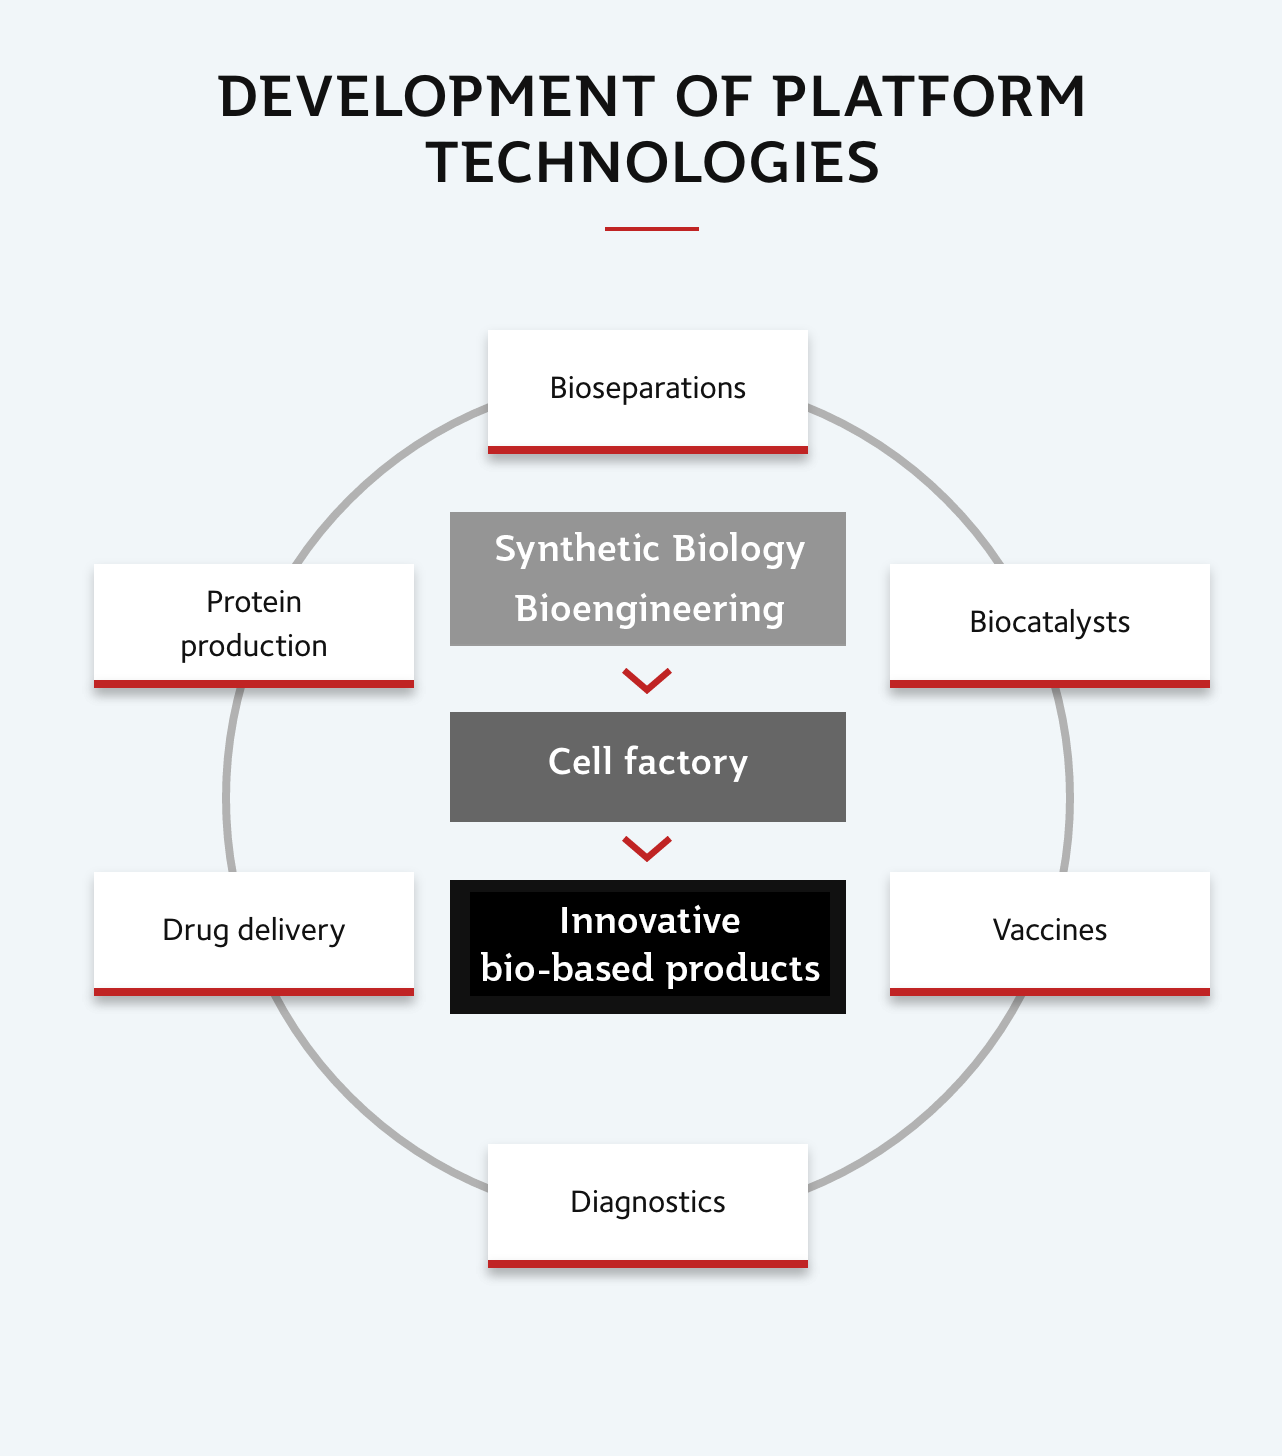 Development of Platform Technologies image depiction